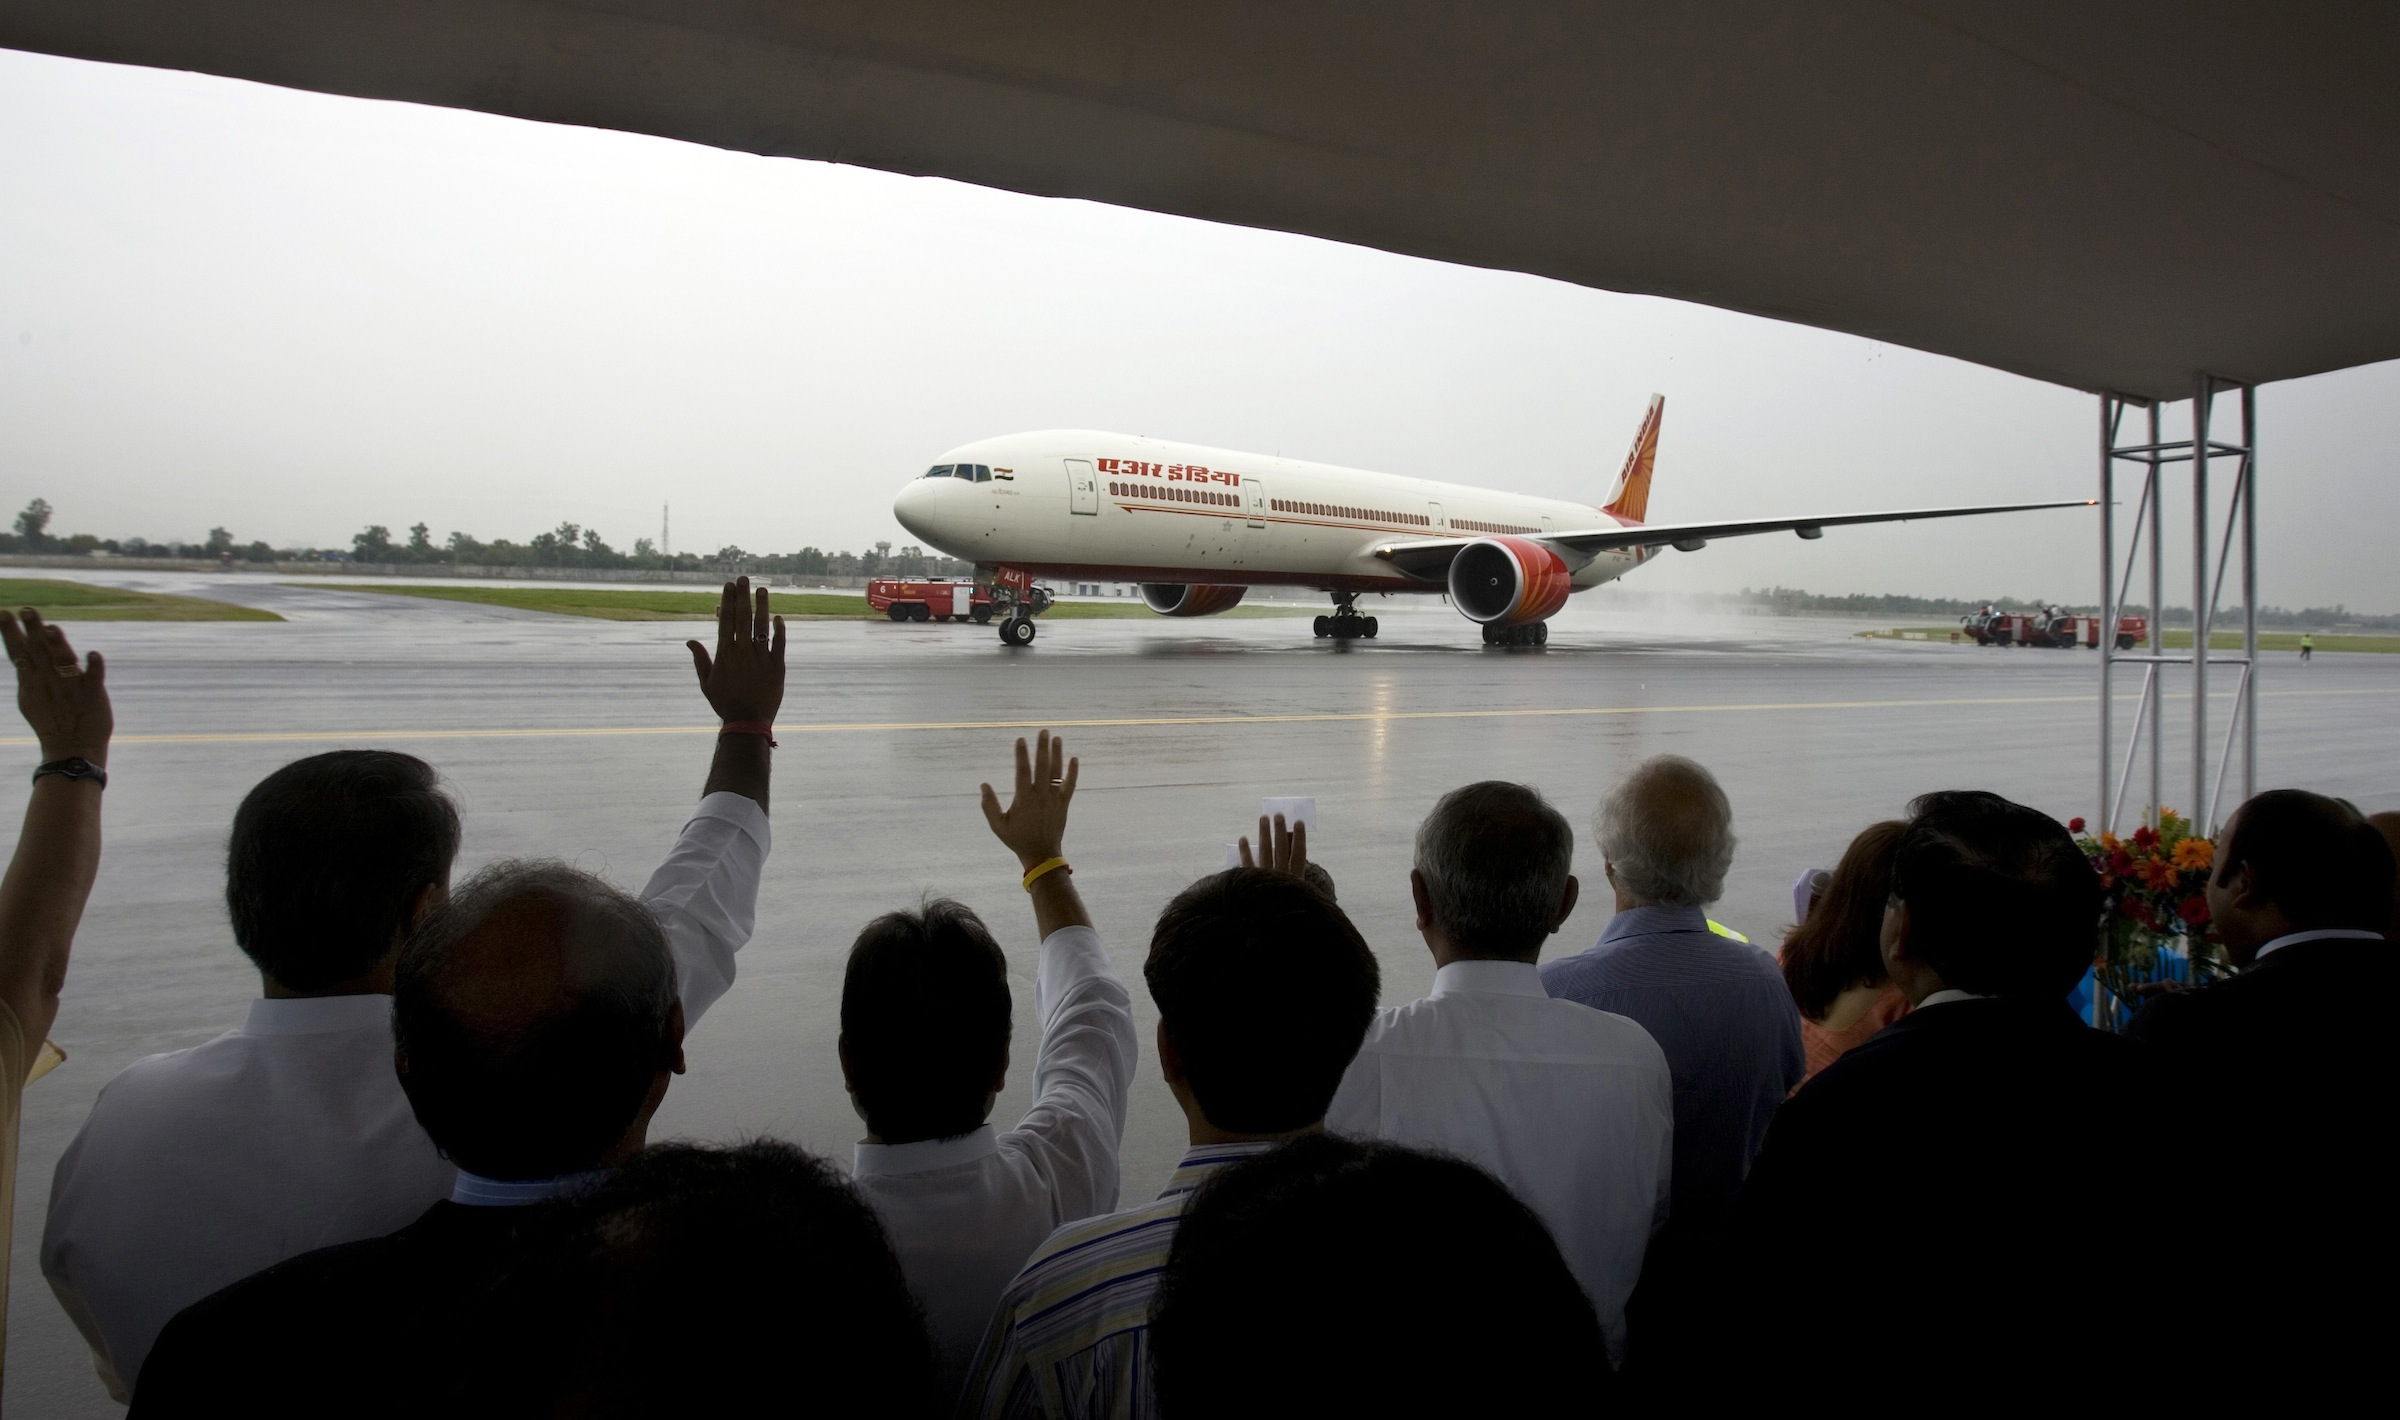 An Air India aircraft taxies as officials wave after landing on the newly constructed third runway at the  Indira Gandhi International Airport  in New Delhi, India, Thursday, Aug. 21, 2008. Indian officials inaugurated the country's longest runway Thursday, hoping it will ease conditions at New Delhi's chronically congested Indira Gandhi International Airport. (AP Photo/Gurinder Osan)